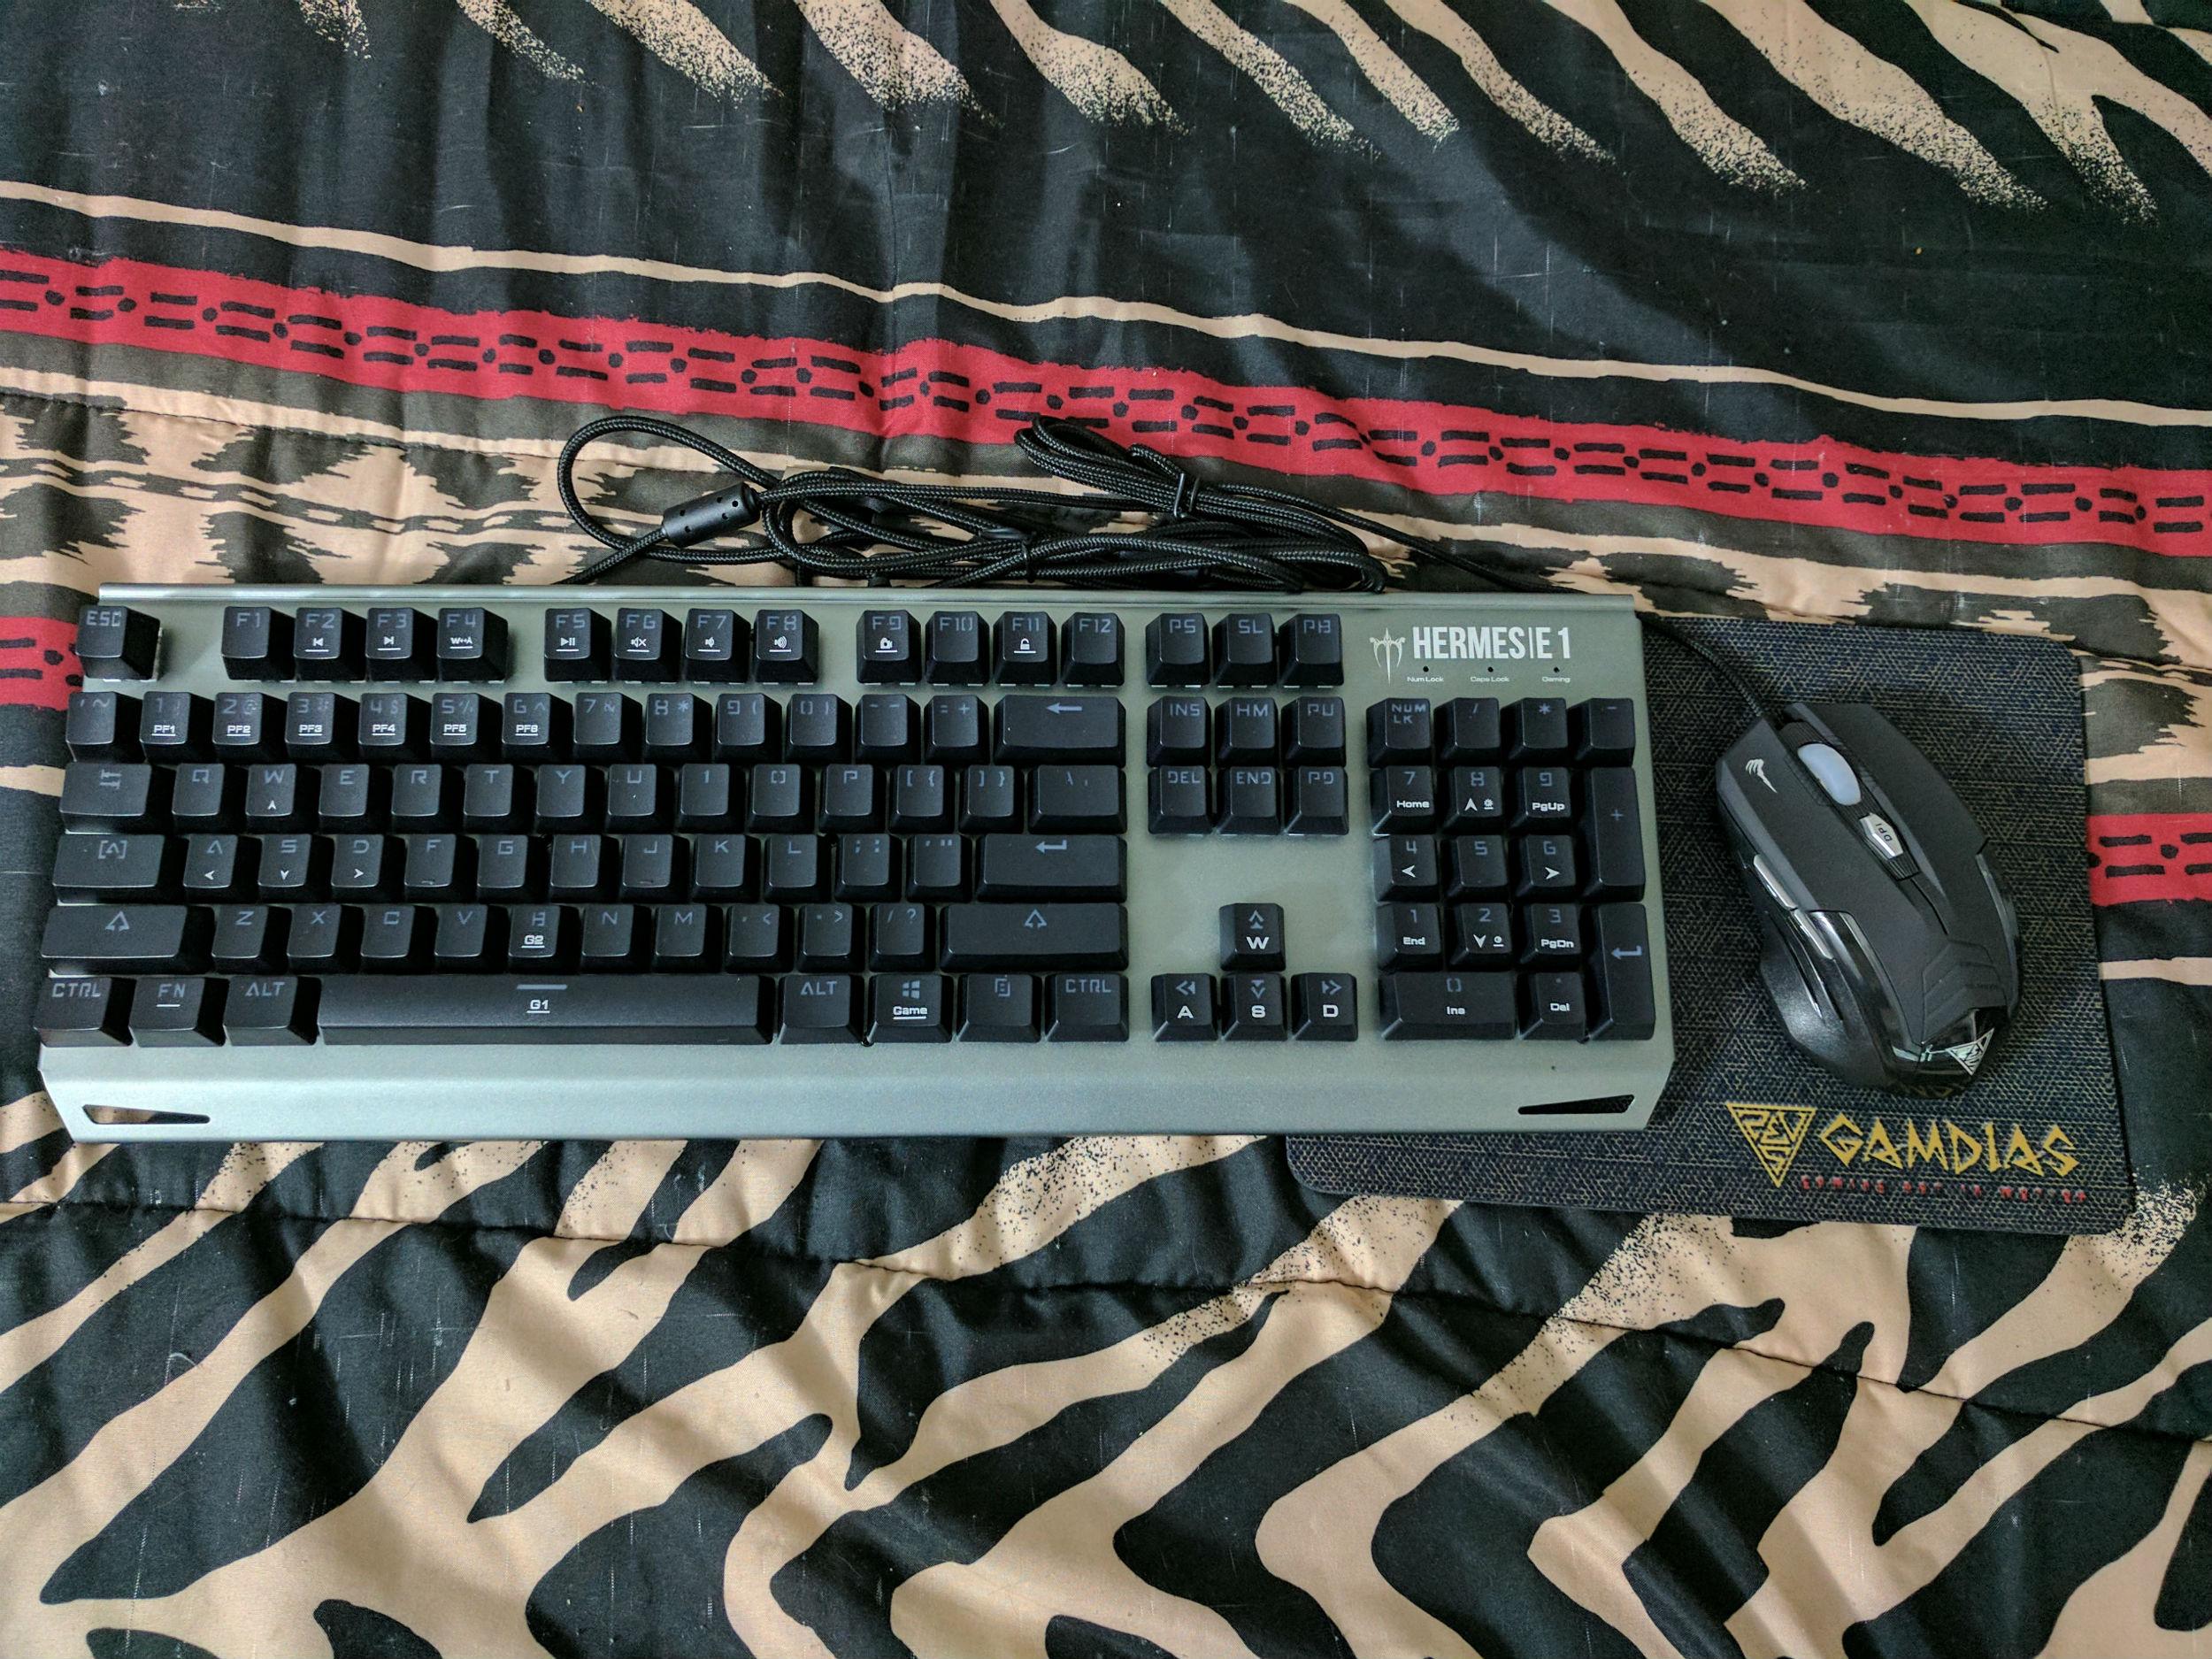 f903fa44a20 Review: Gamdias Hermes E1 gaming keyboard and mouse combo ...